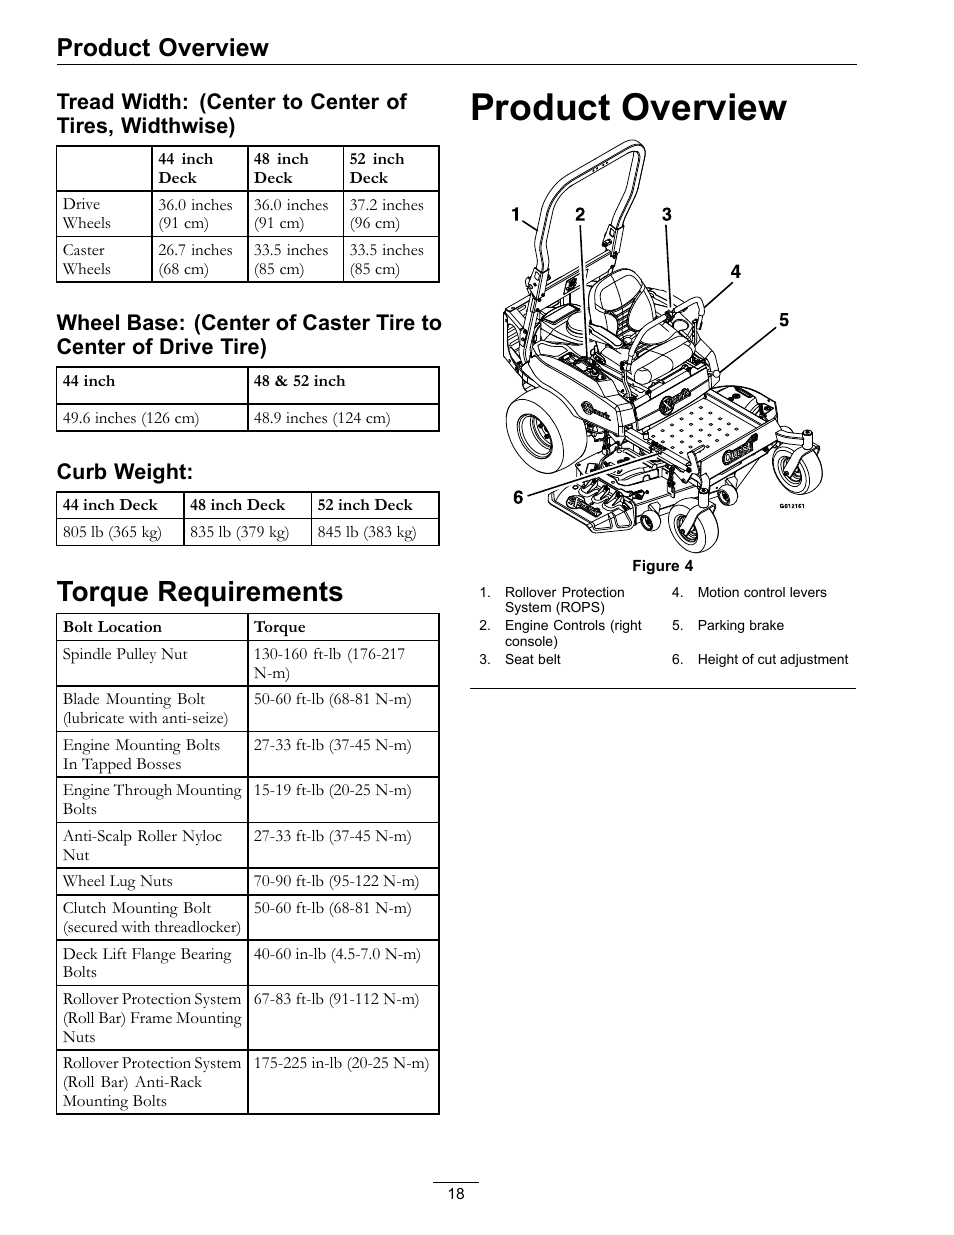 hight resolution of torque requirements product overview curb weight exmark quest sp models 850 user manual